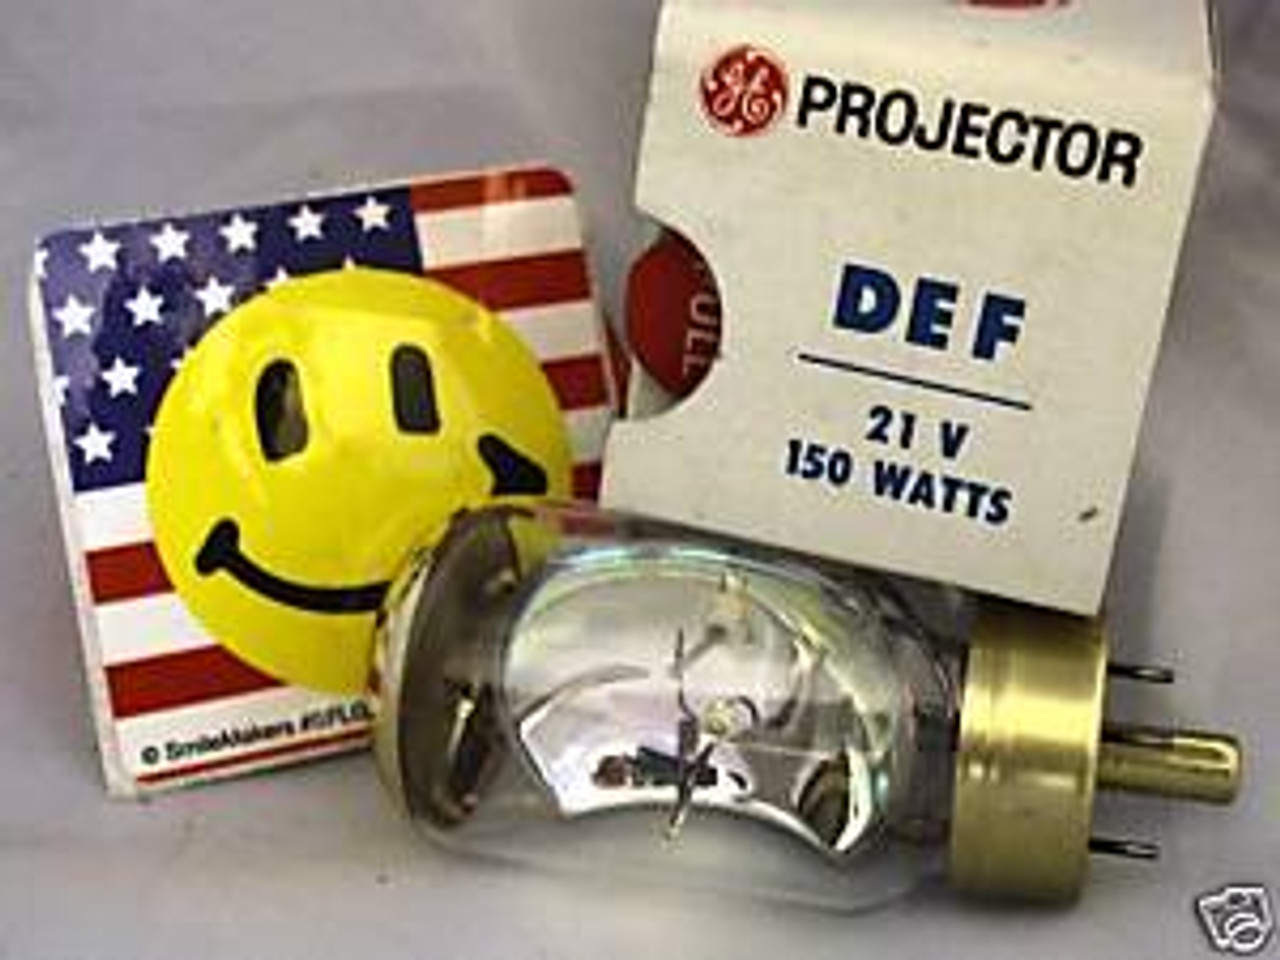 Revere Camera Co. AP-828 8mm Projector Replacement Lamp Bulb  - DEF